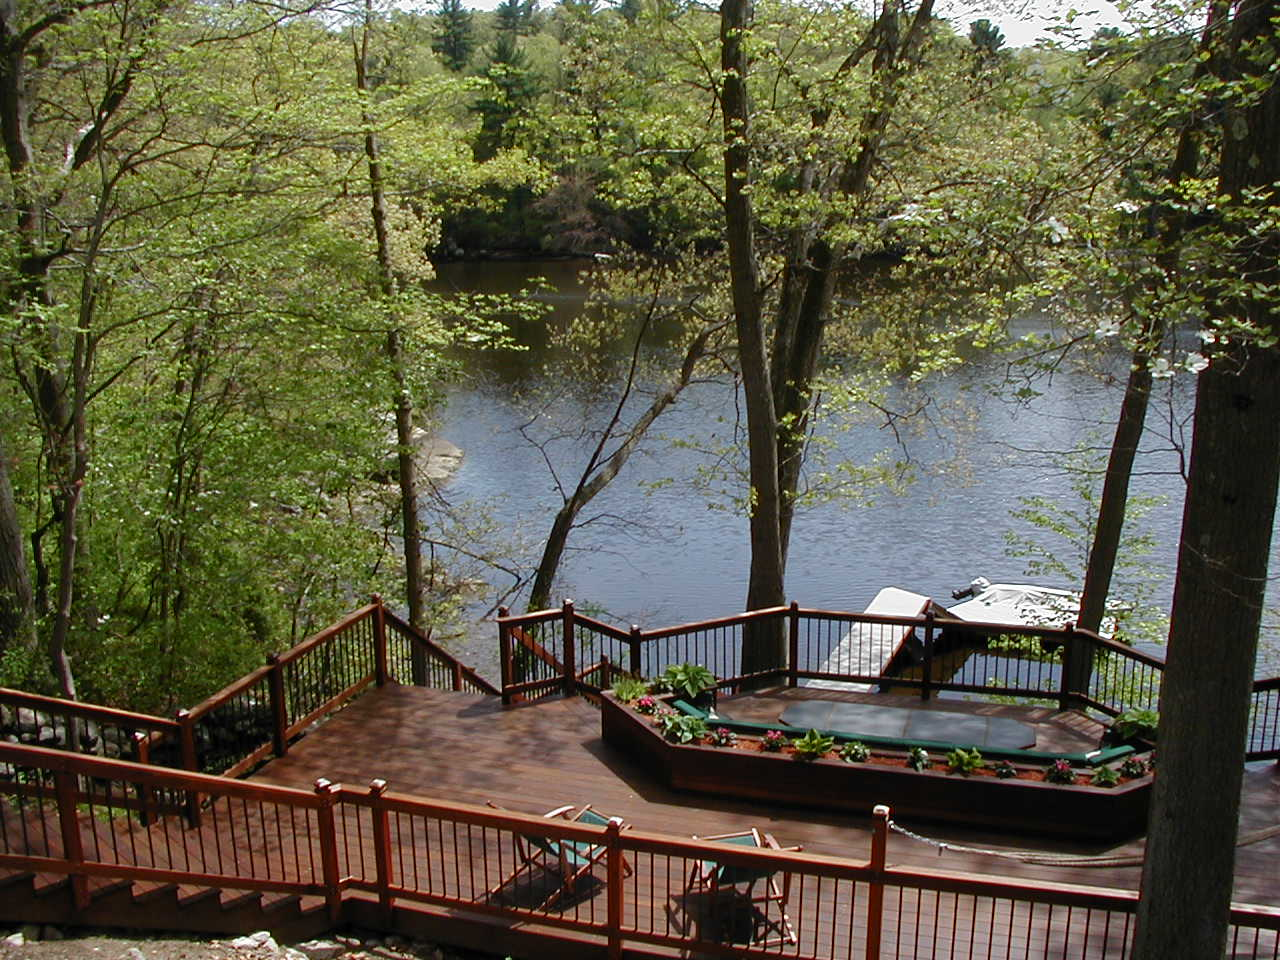 Ipe deck, dock, railing and stairs by the water